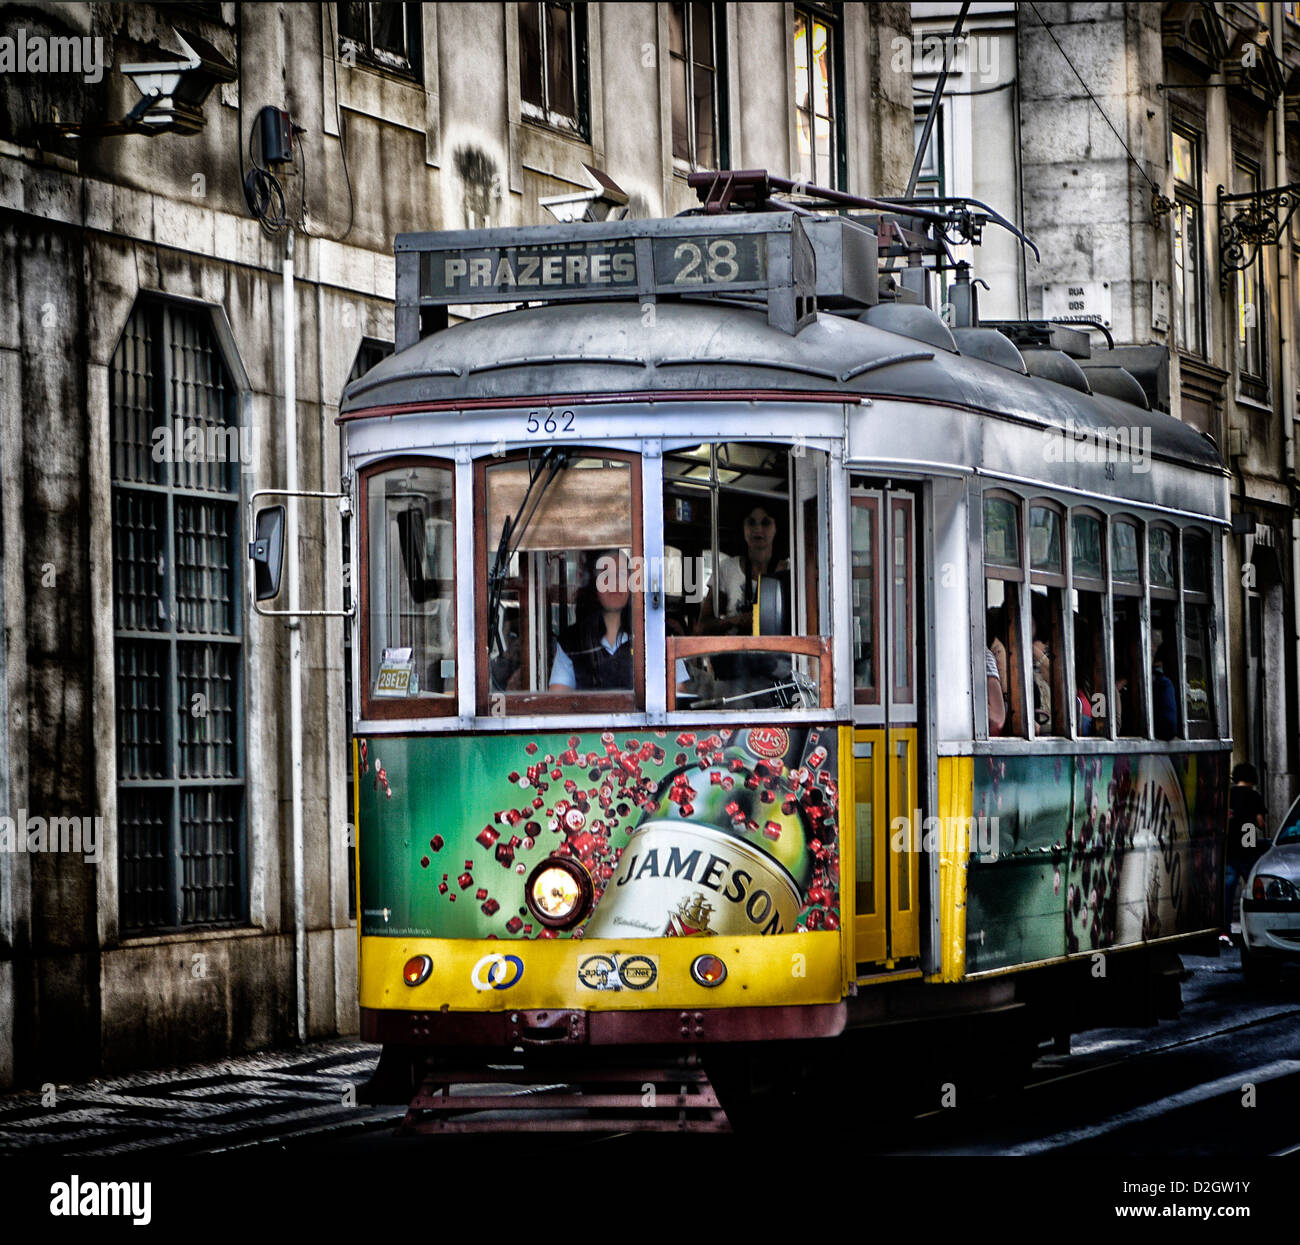 An old Lisbon tram with post photography work to enhance pictorial qualities. - Stock Image